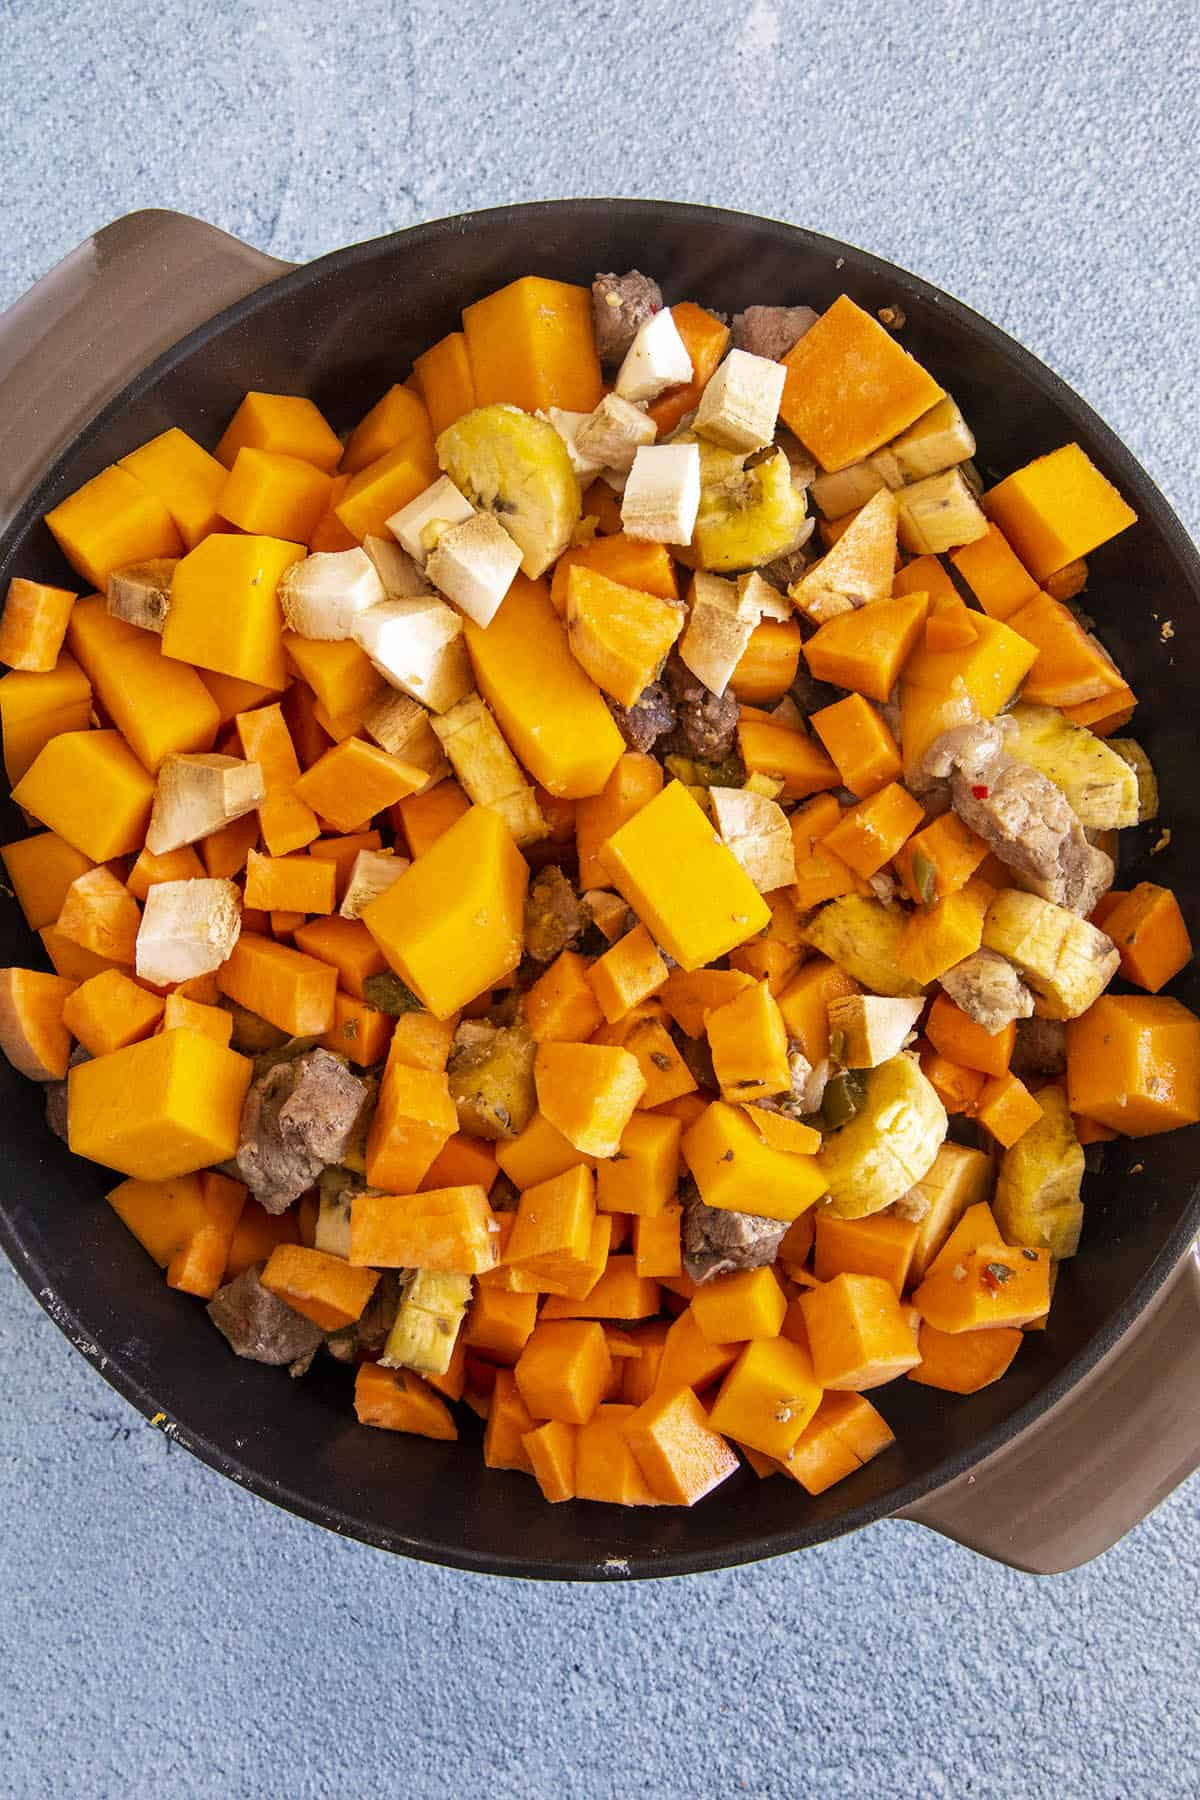 Adding the root vegetables to the pot